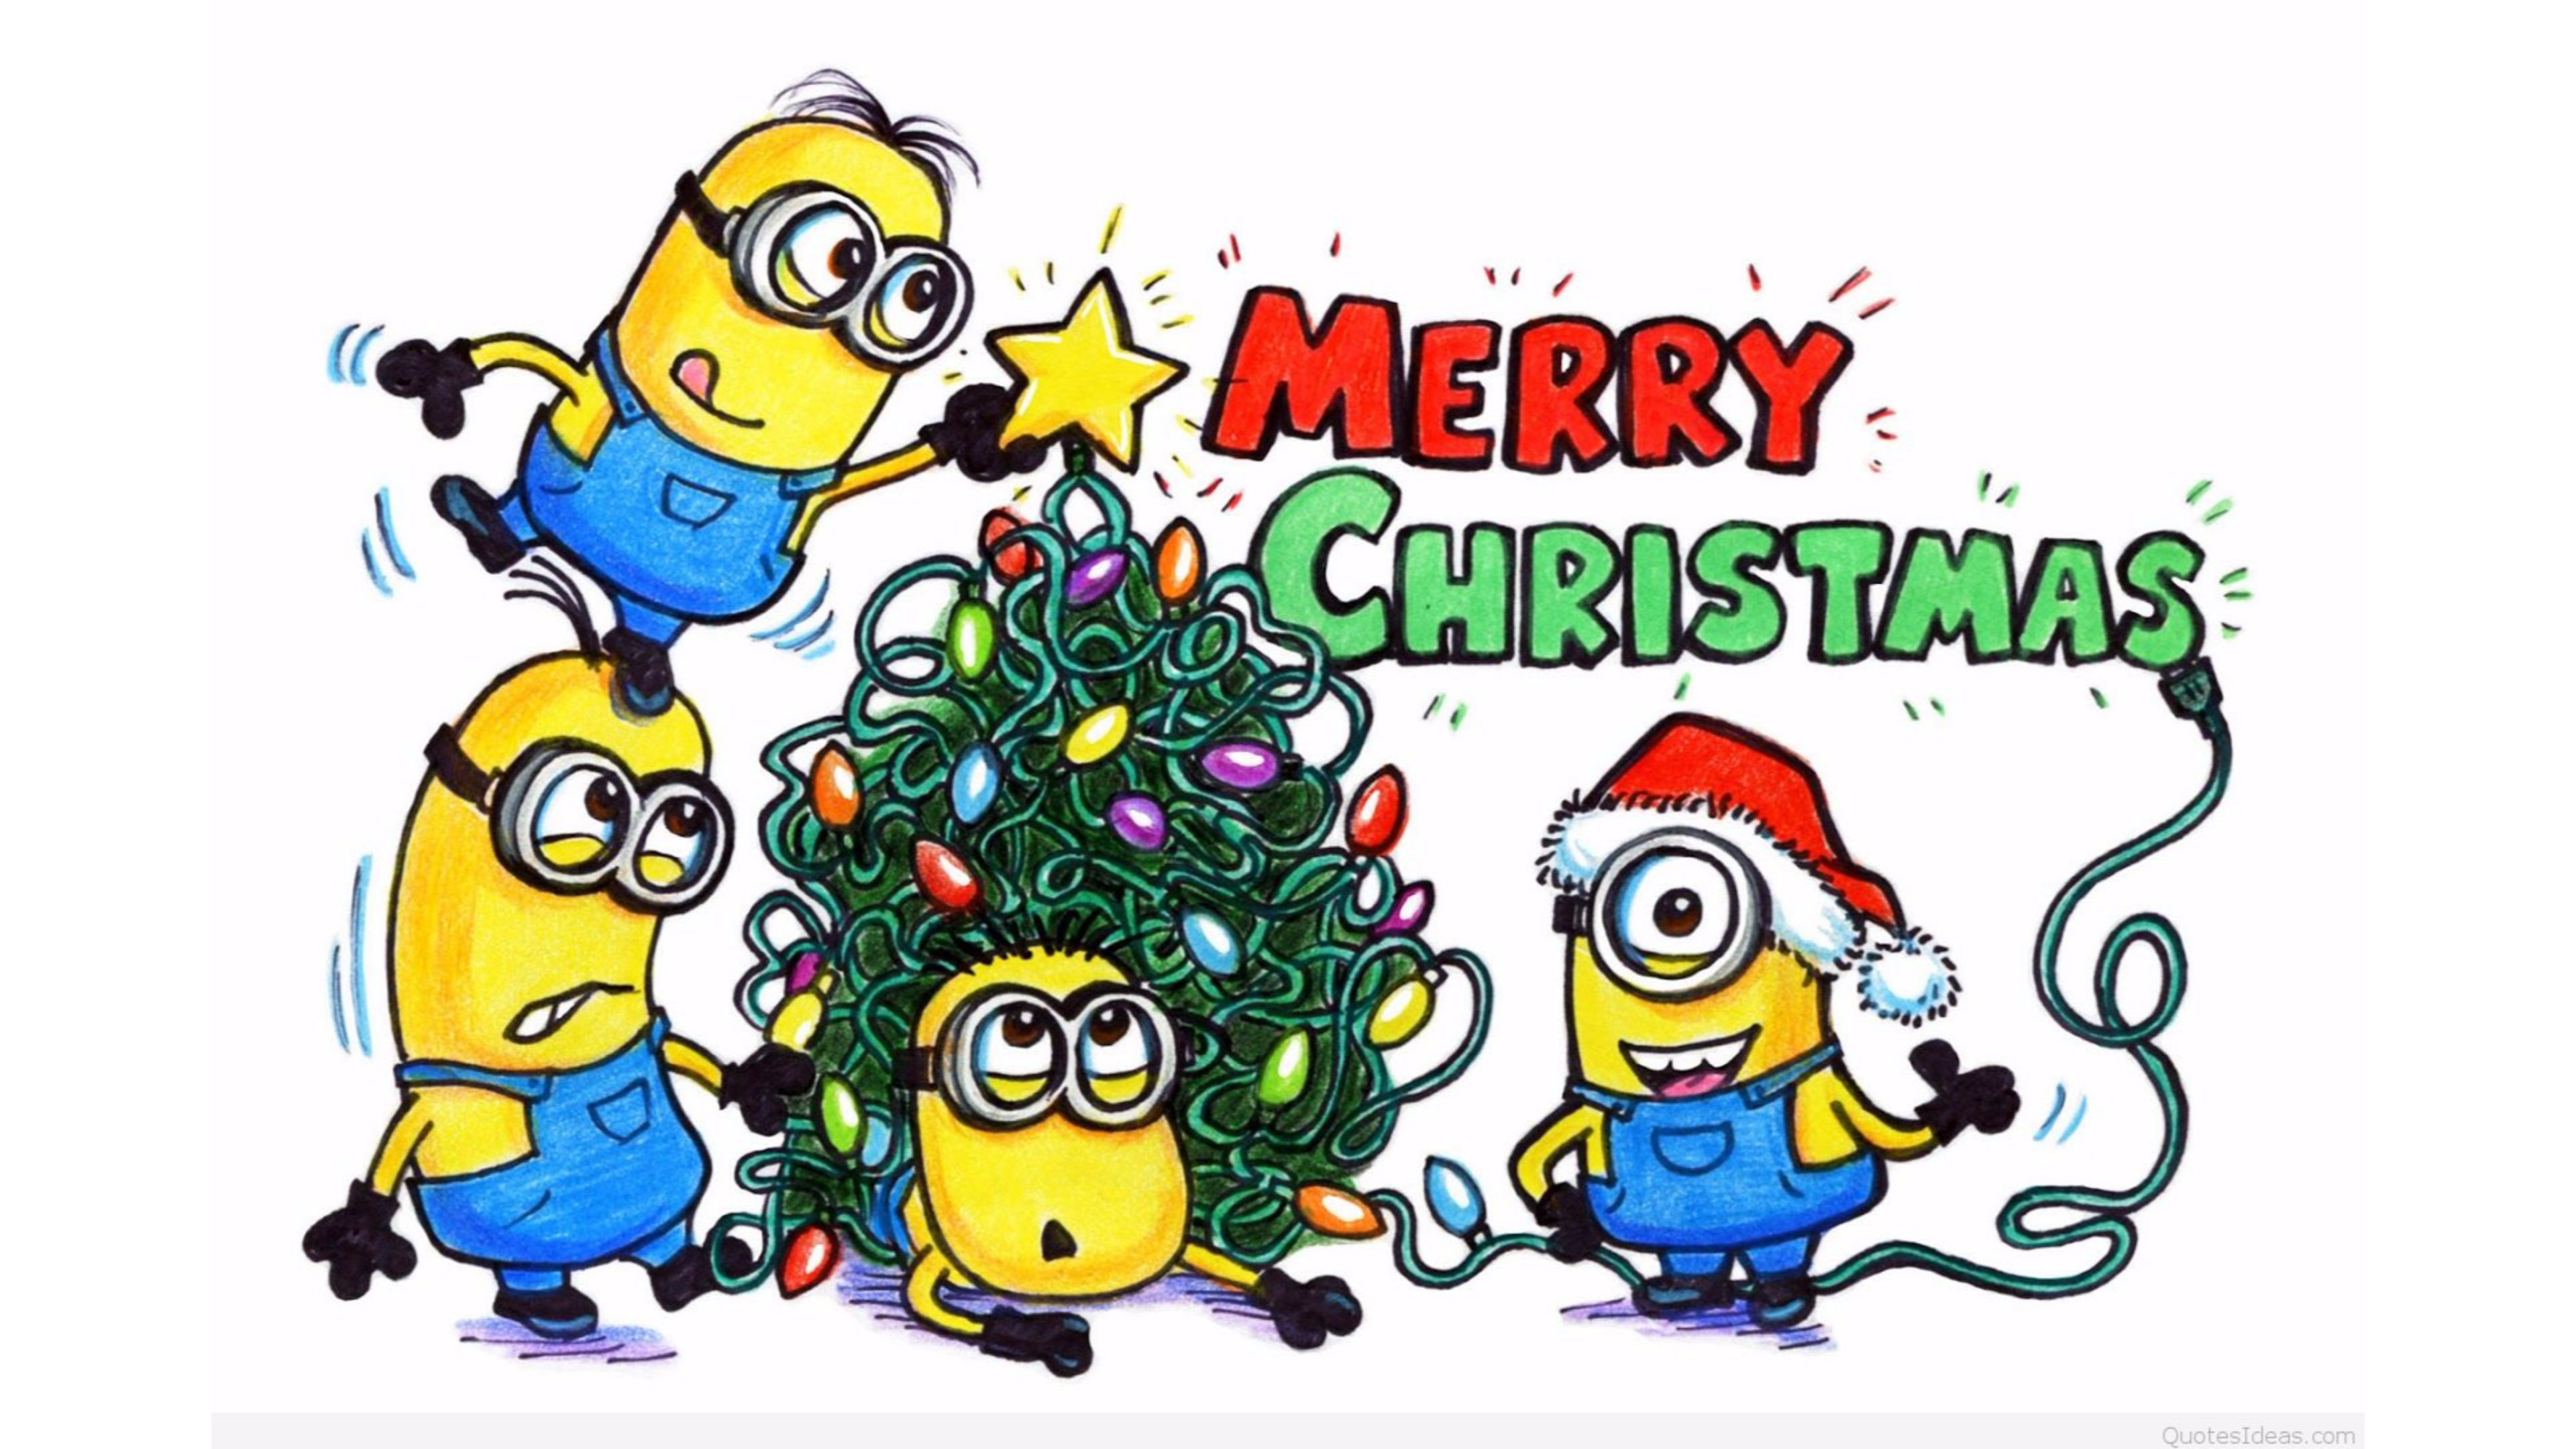 Funny Minion Merry Christmas Wallpapers Sayings: Christmas Wallpapers And Desktop Backgrounds Up To 8K